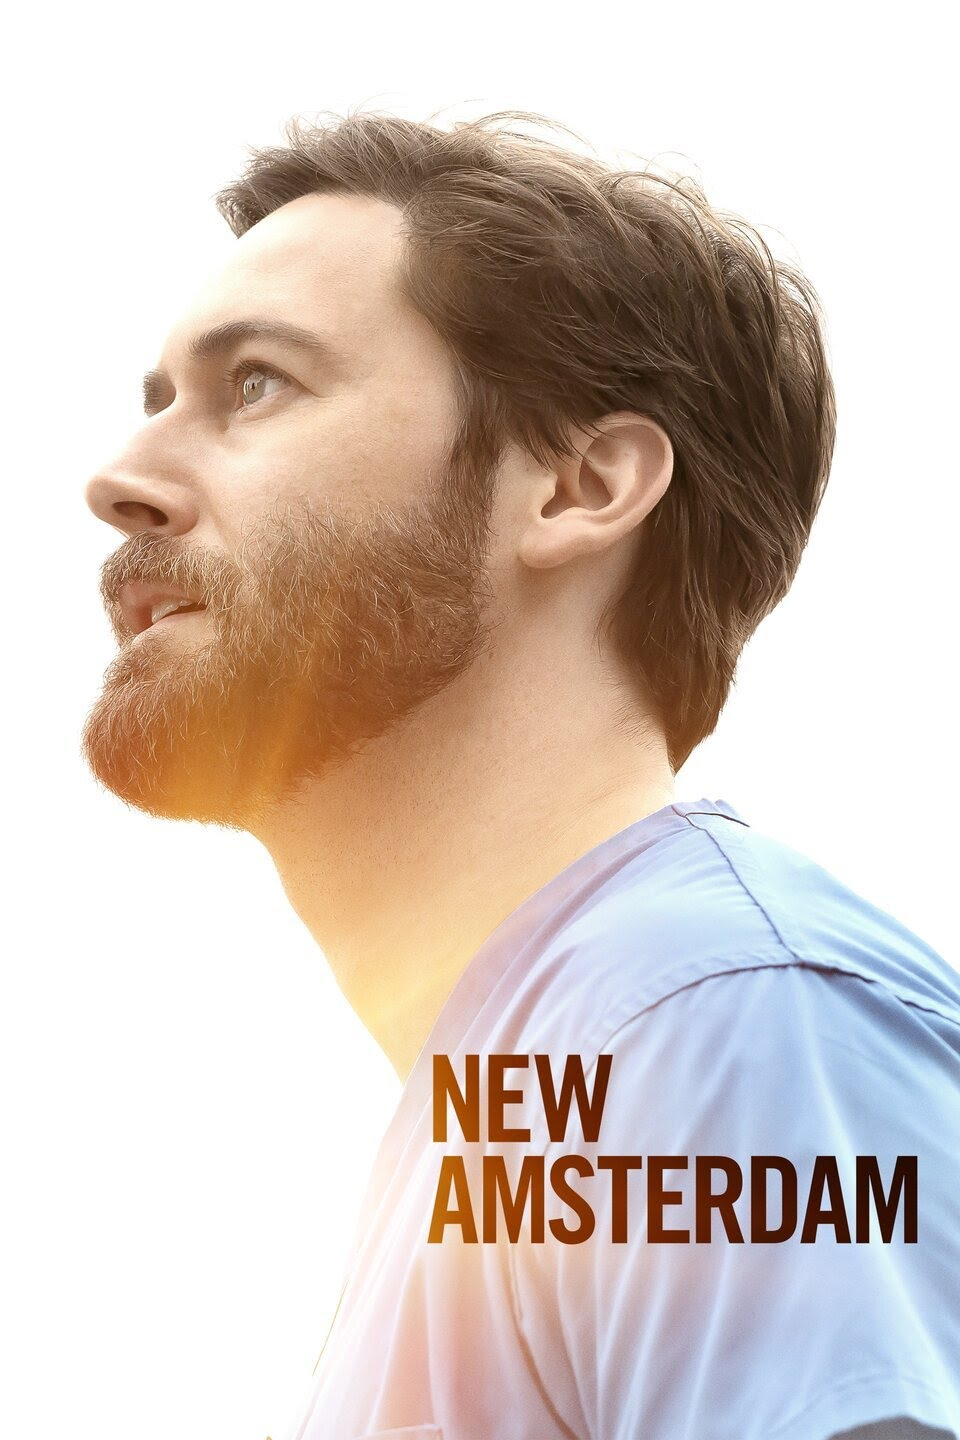 New Amsterdam - Season 3 Episode 1 - The New Normal